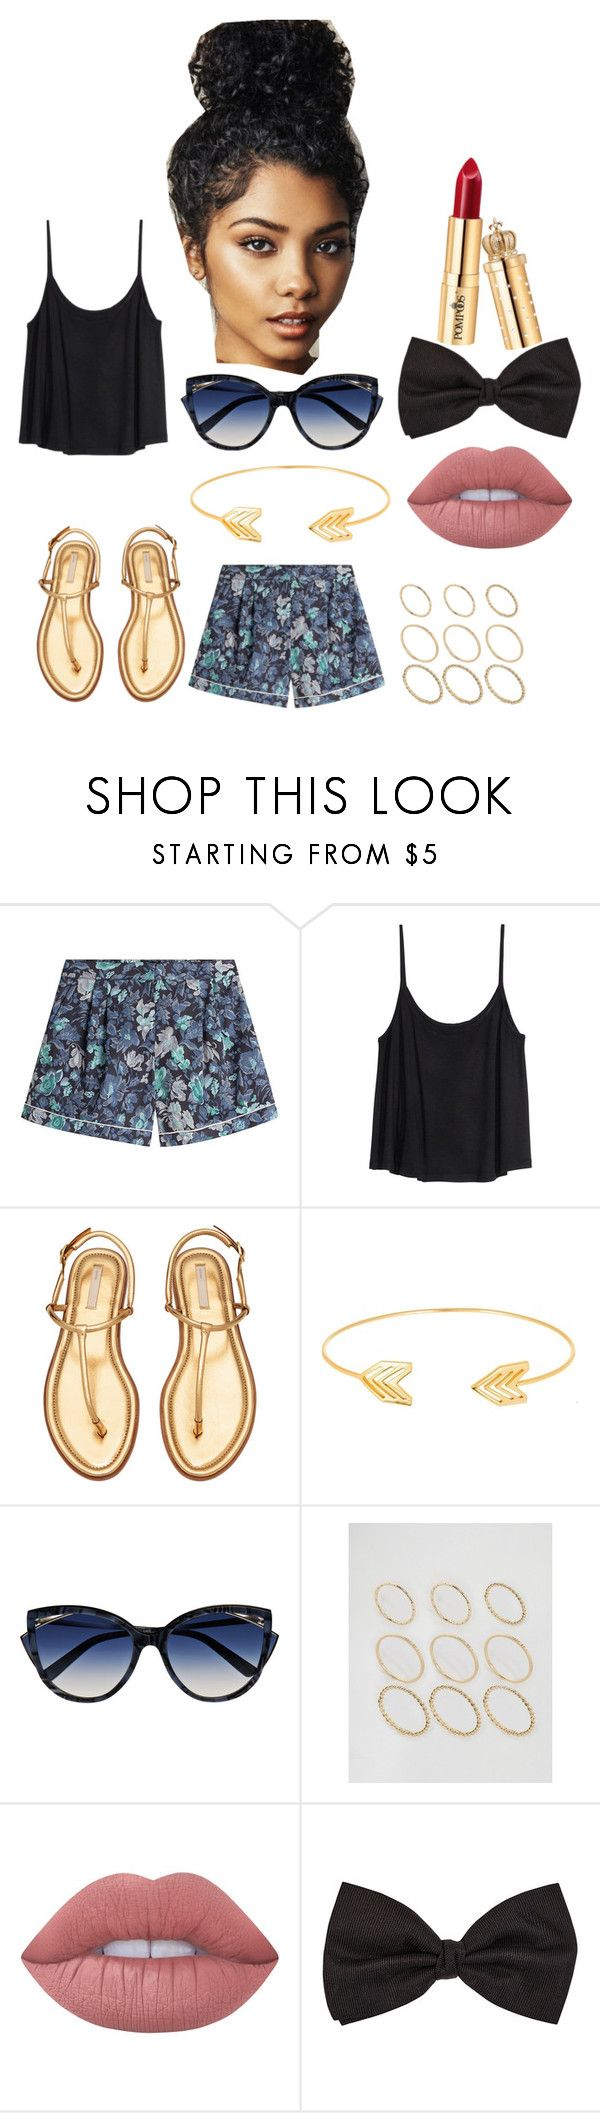 """""""Untitled #270"""" by diamondinthesky13 on Polyvore featuring Burberry, H&M, Lord & Taylor, La Perla, ASOS, Lime Crime and Barneys New York"""